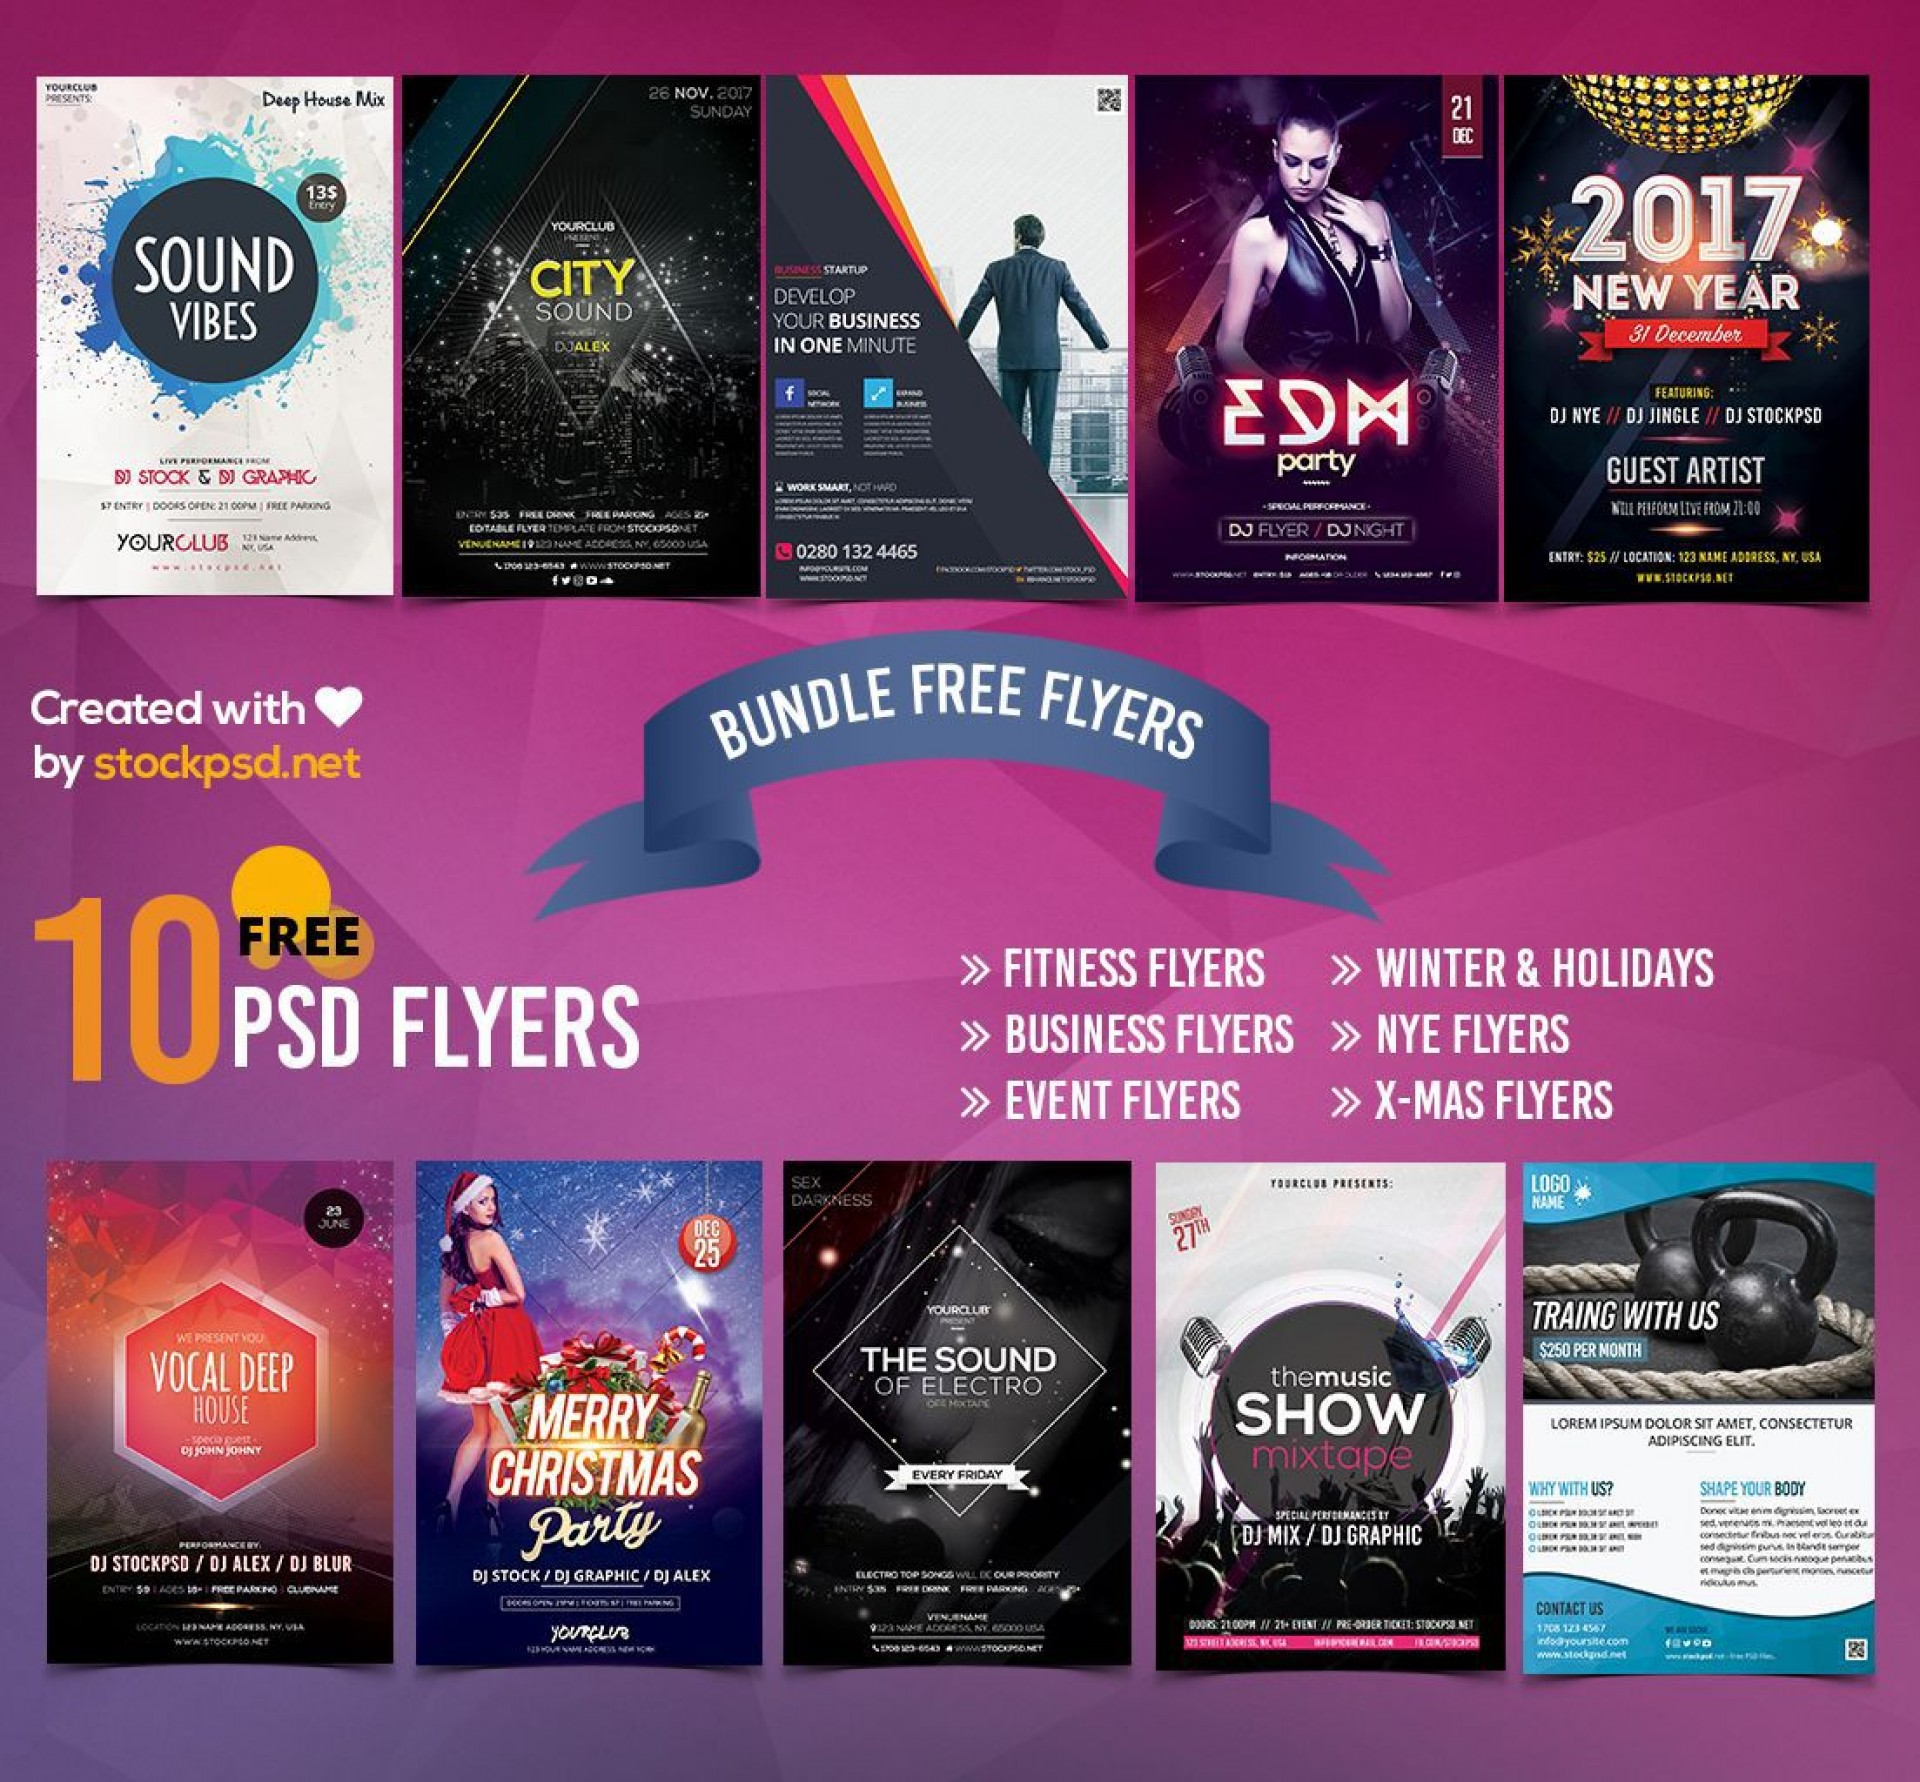 001 Archaicawful Free Party Flyer Template For Mac Highest Quality 1920